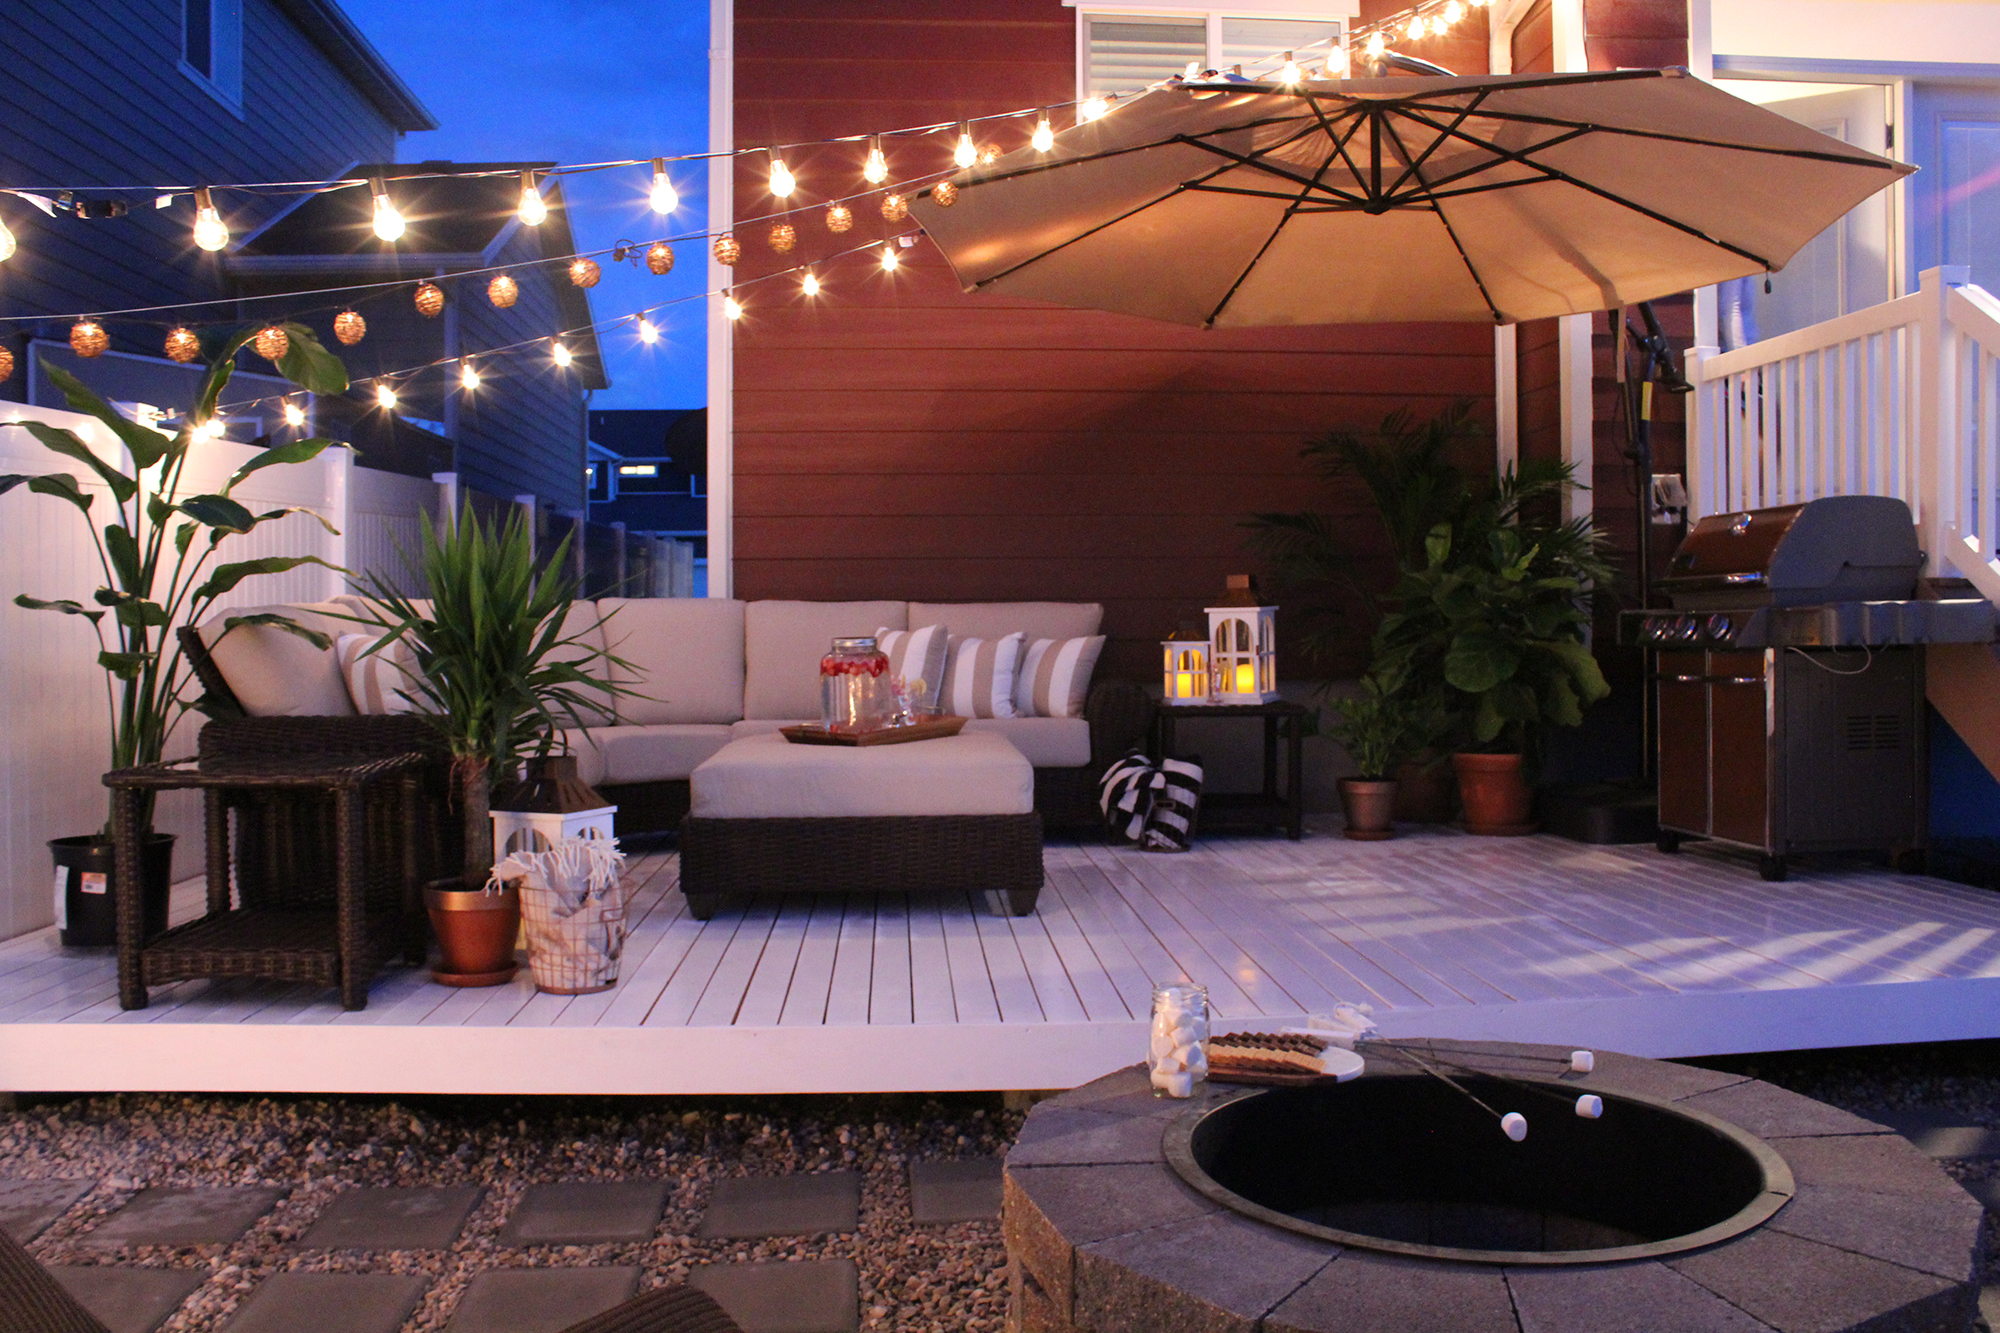 Patio Set Featuring String Lights And LED Andles  Home Depot Patio